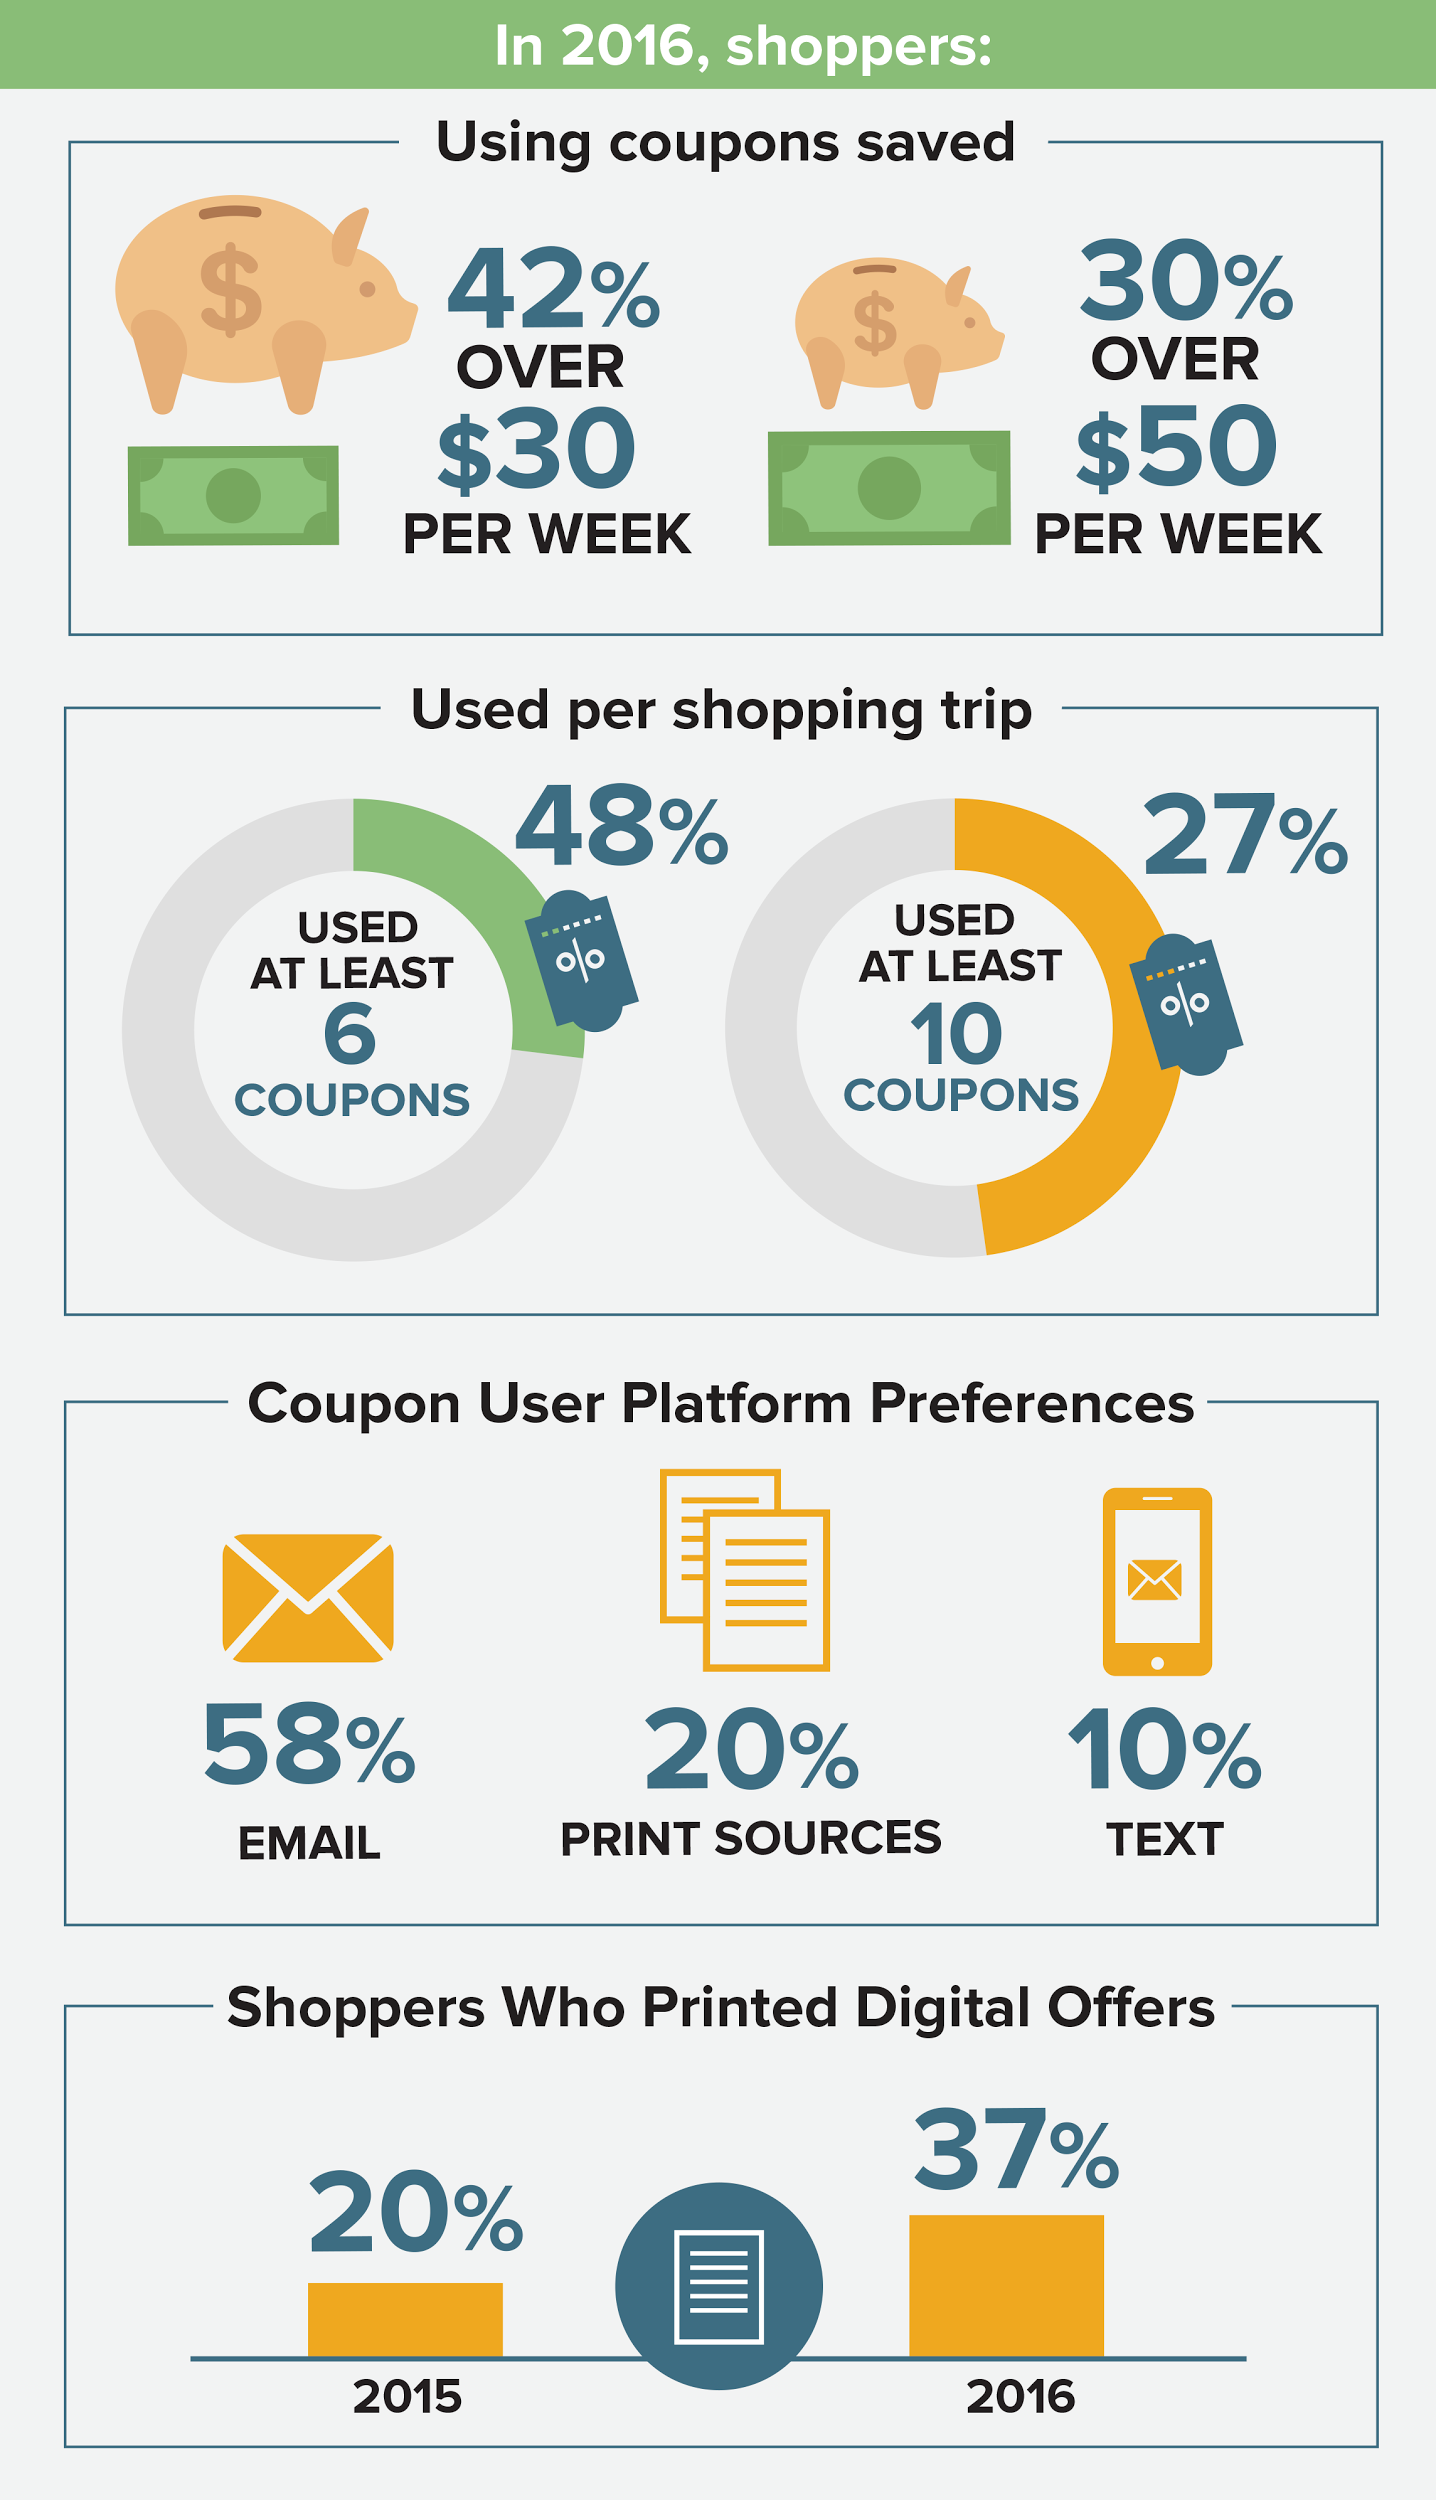 in 2016, shoppers using coupons saved